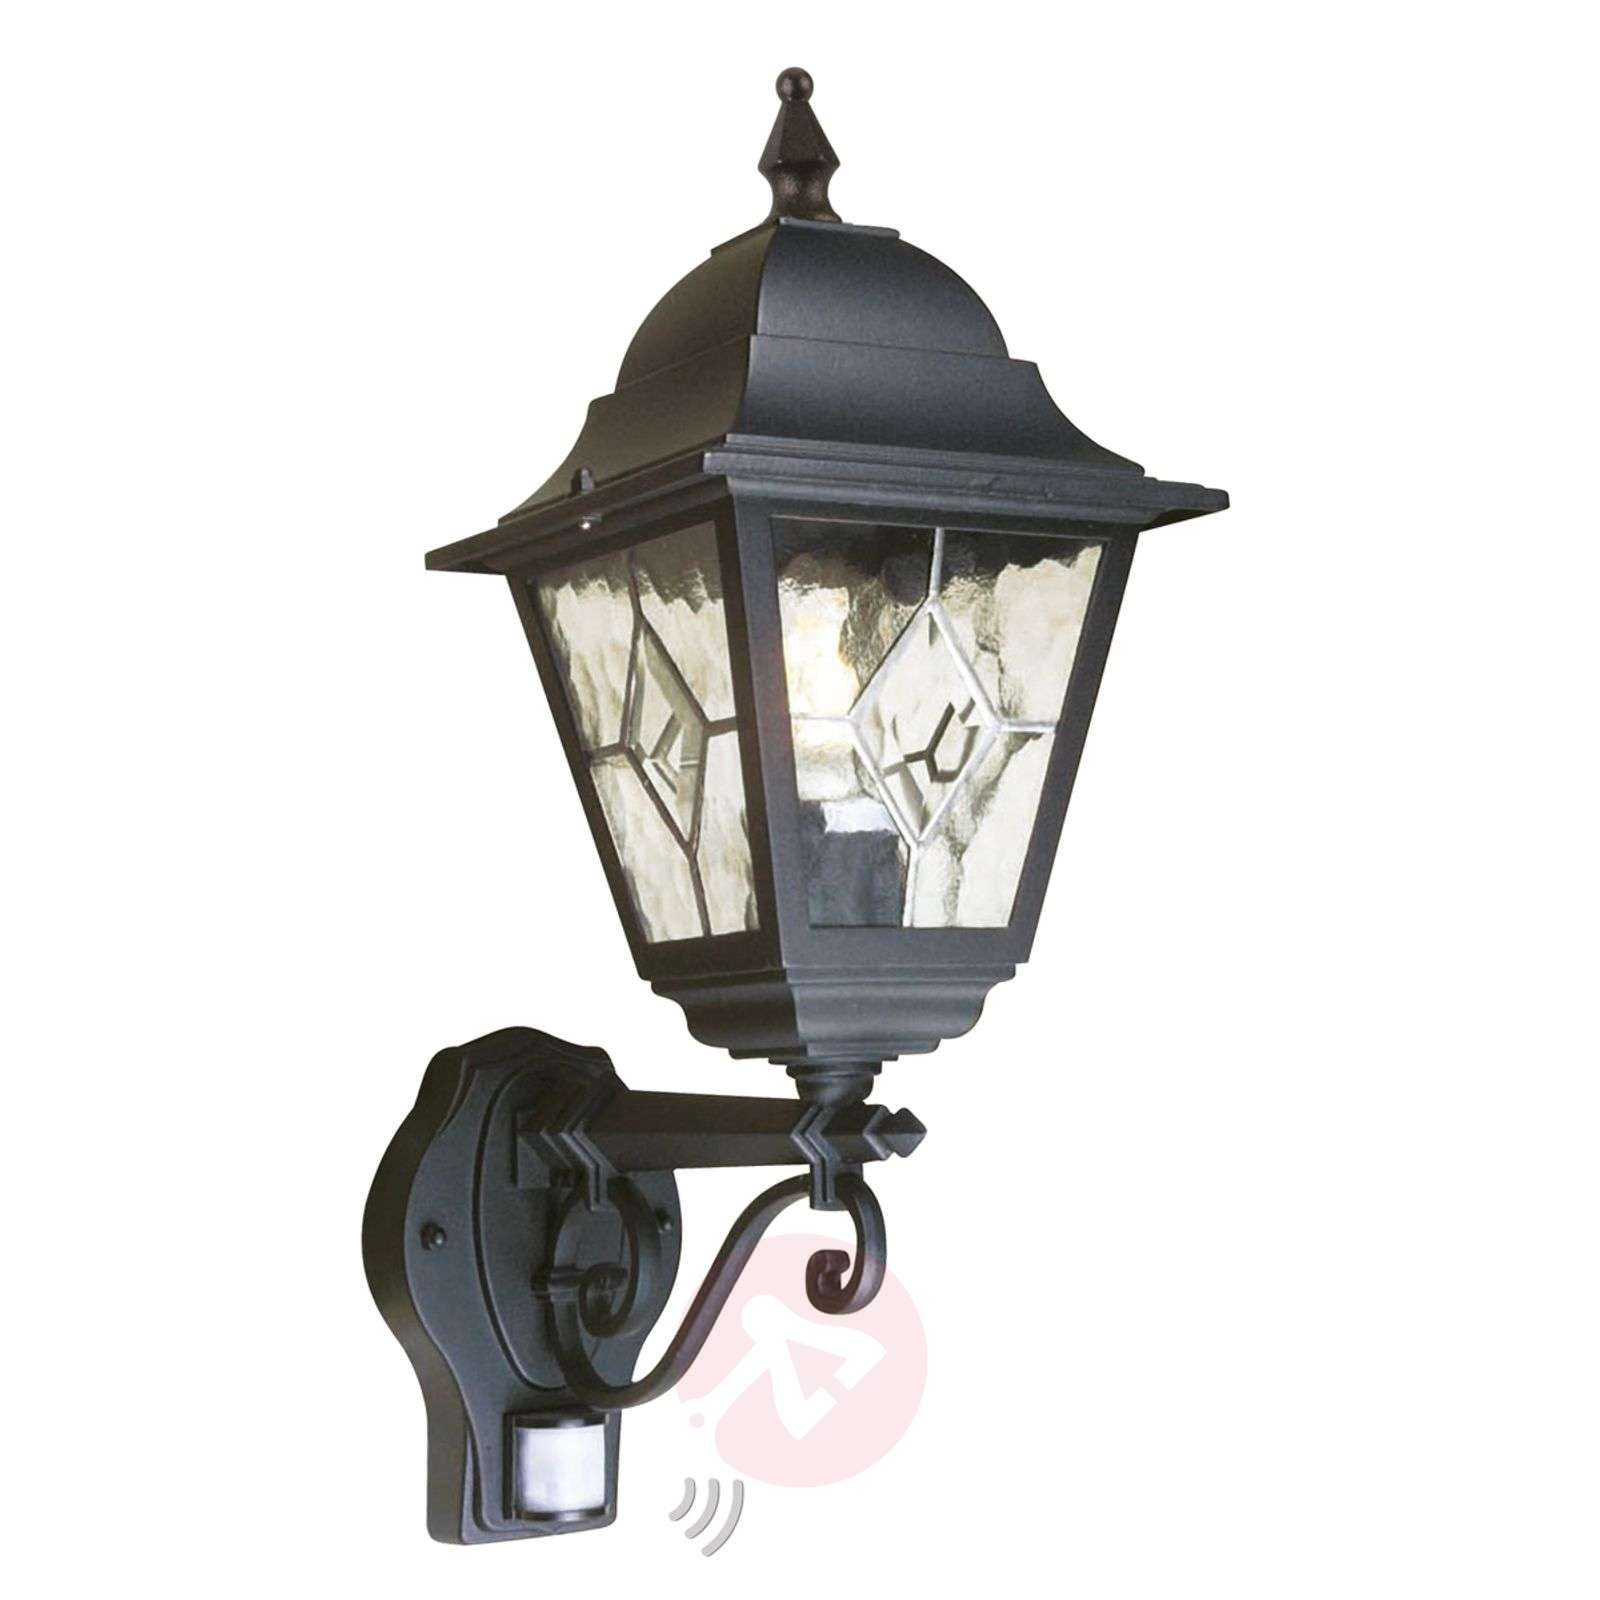 Lead glazed outdoor wall lamp Norfolk-3048423-01